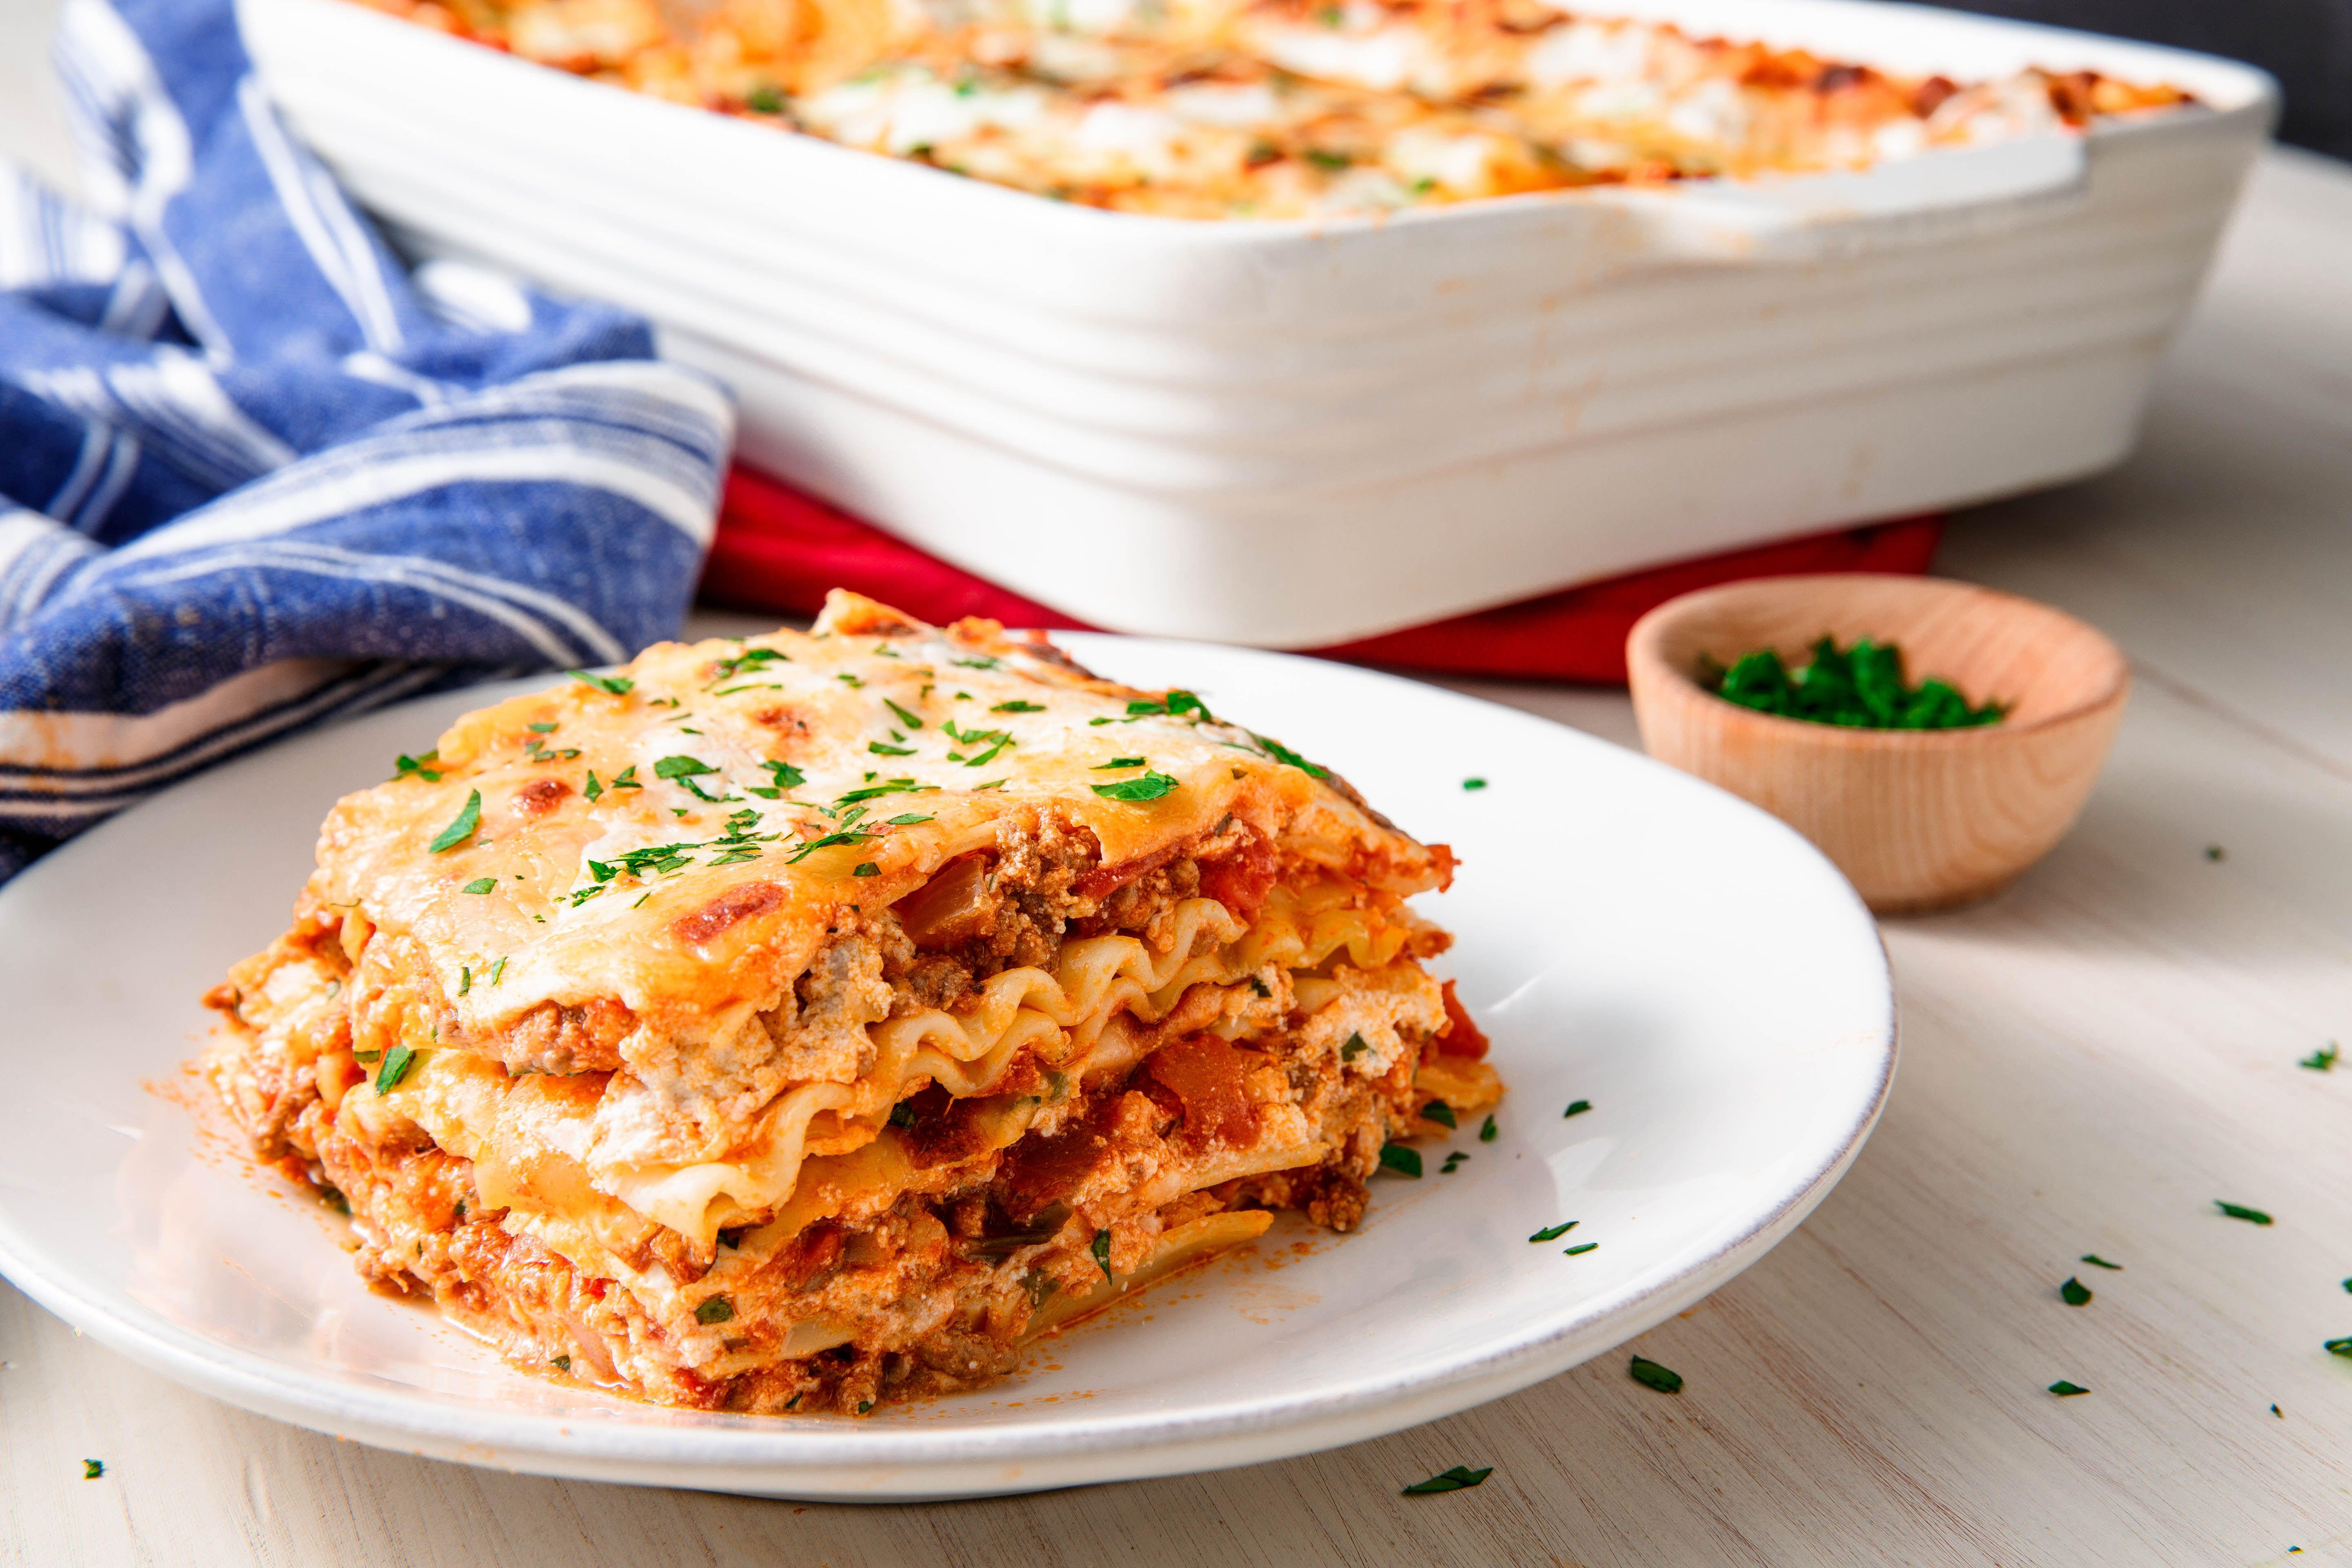 """<p>Layers of noodles, cheese, meat, and sauce? This may just be the best comfort food dish of all time. For more pasta ideas, try these <a href=""""https://www.delish.com/cooking/g1252/stuffed-shell-recipes/"""" rel=""""nofollow noopener"""" target=""""_blank"""" data-ylk=""""slk:stuffed shell recipes"""" class=""""link rapid-noclick-resp"""">stuffed shell recipes</a>.</p>"""